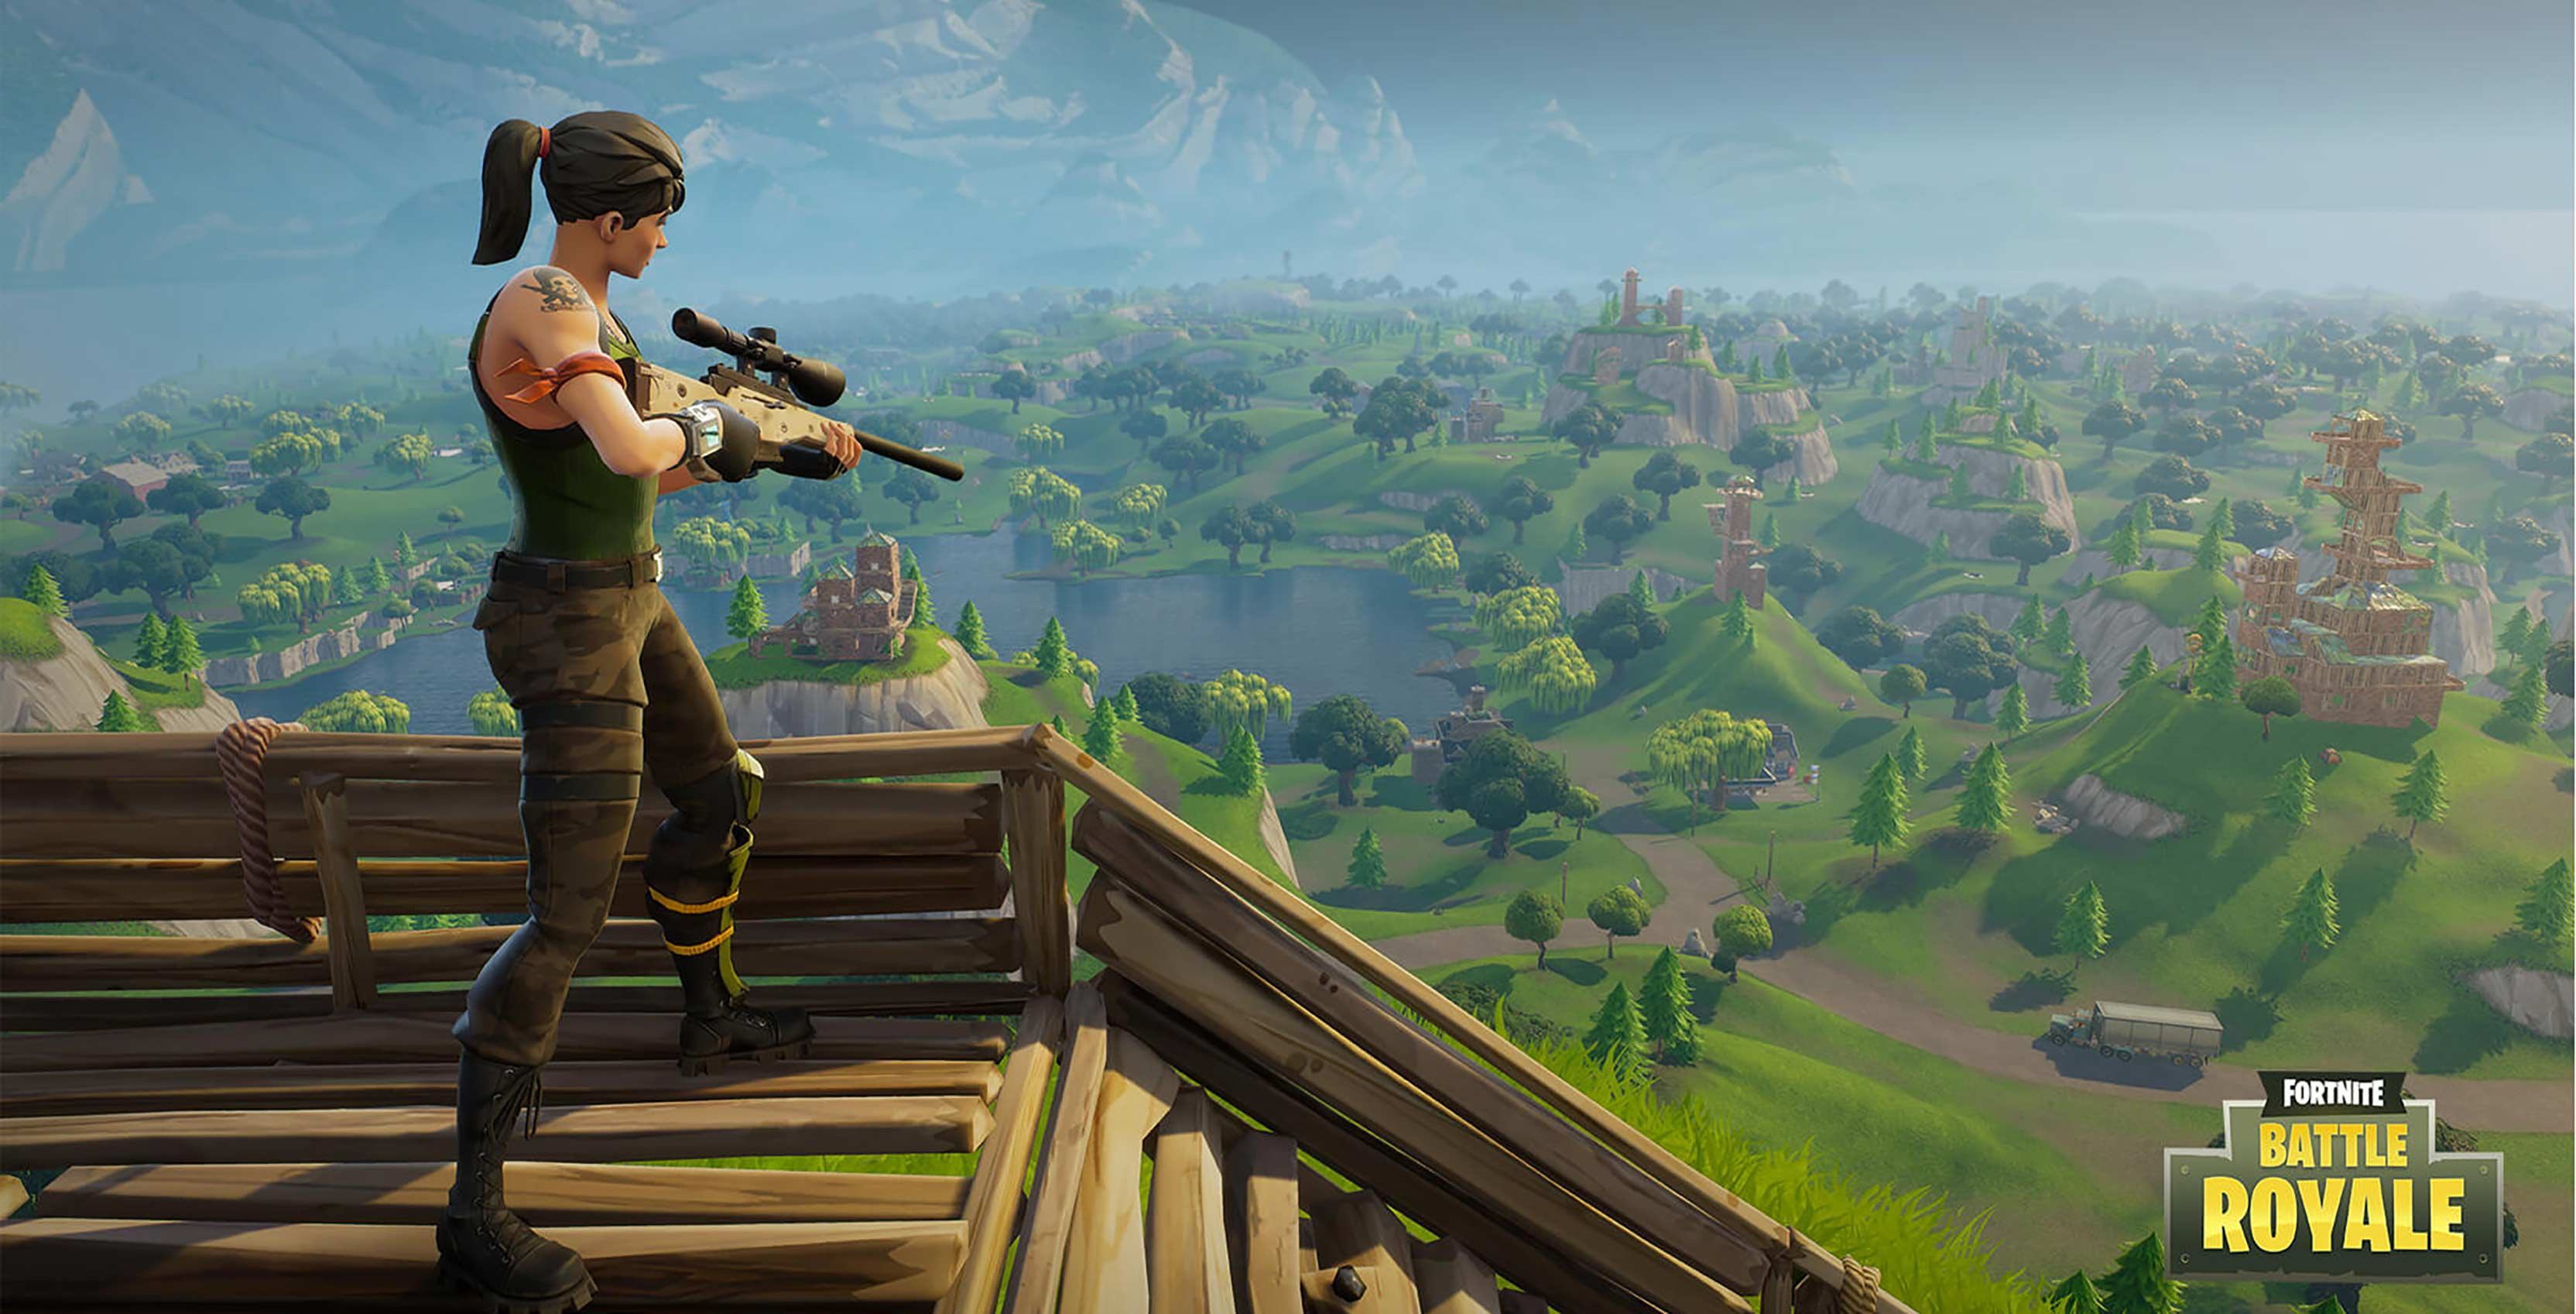 Fortnite Features Cross-Platform Play Between PS4 And Xbox One